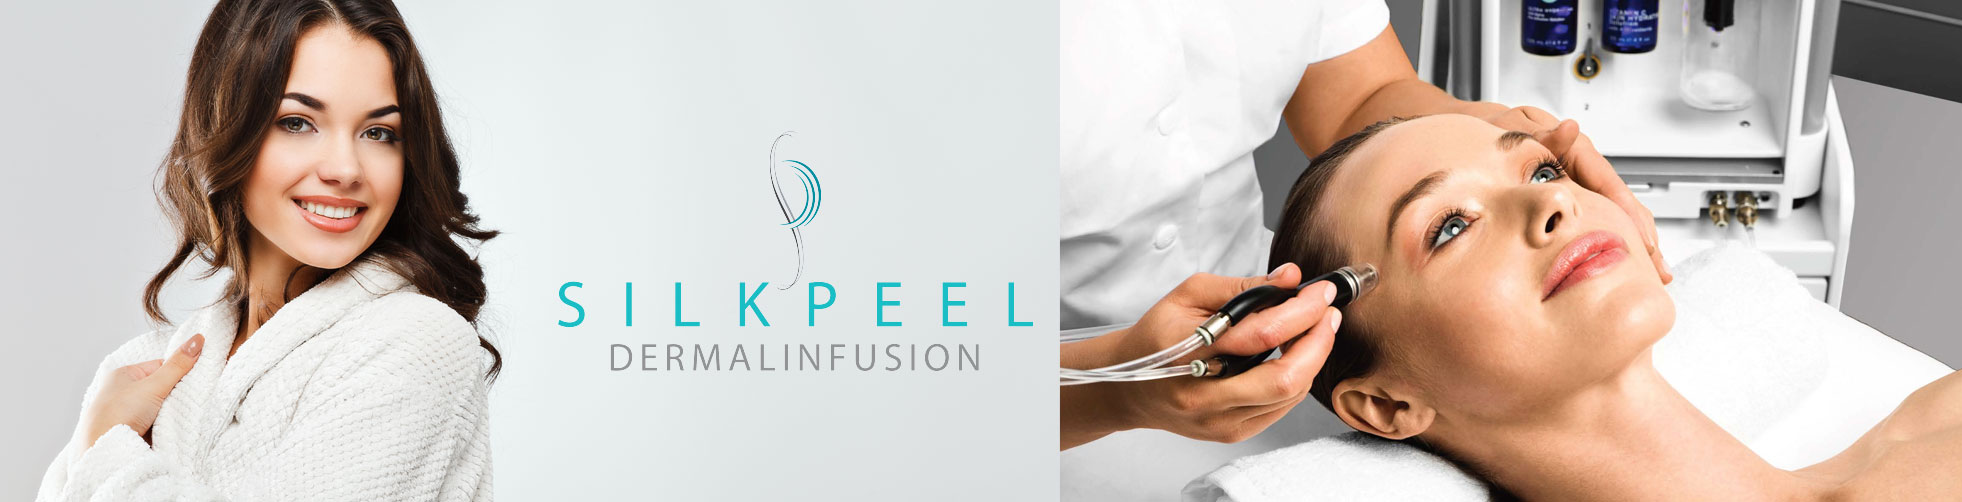 silk peel facial treatment orange county, brea california spa